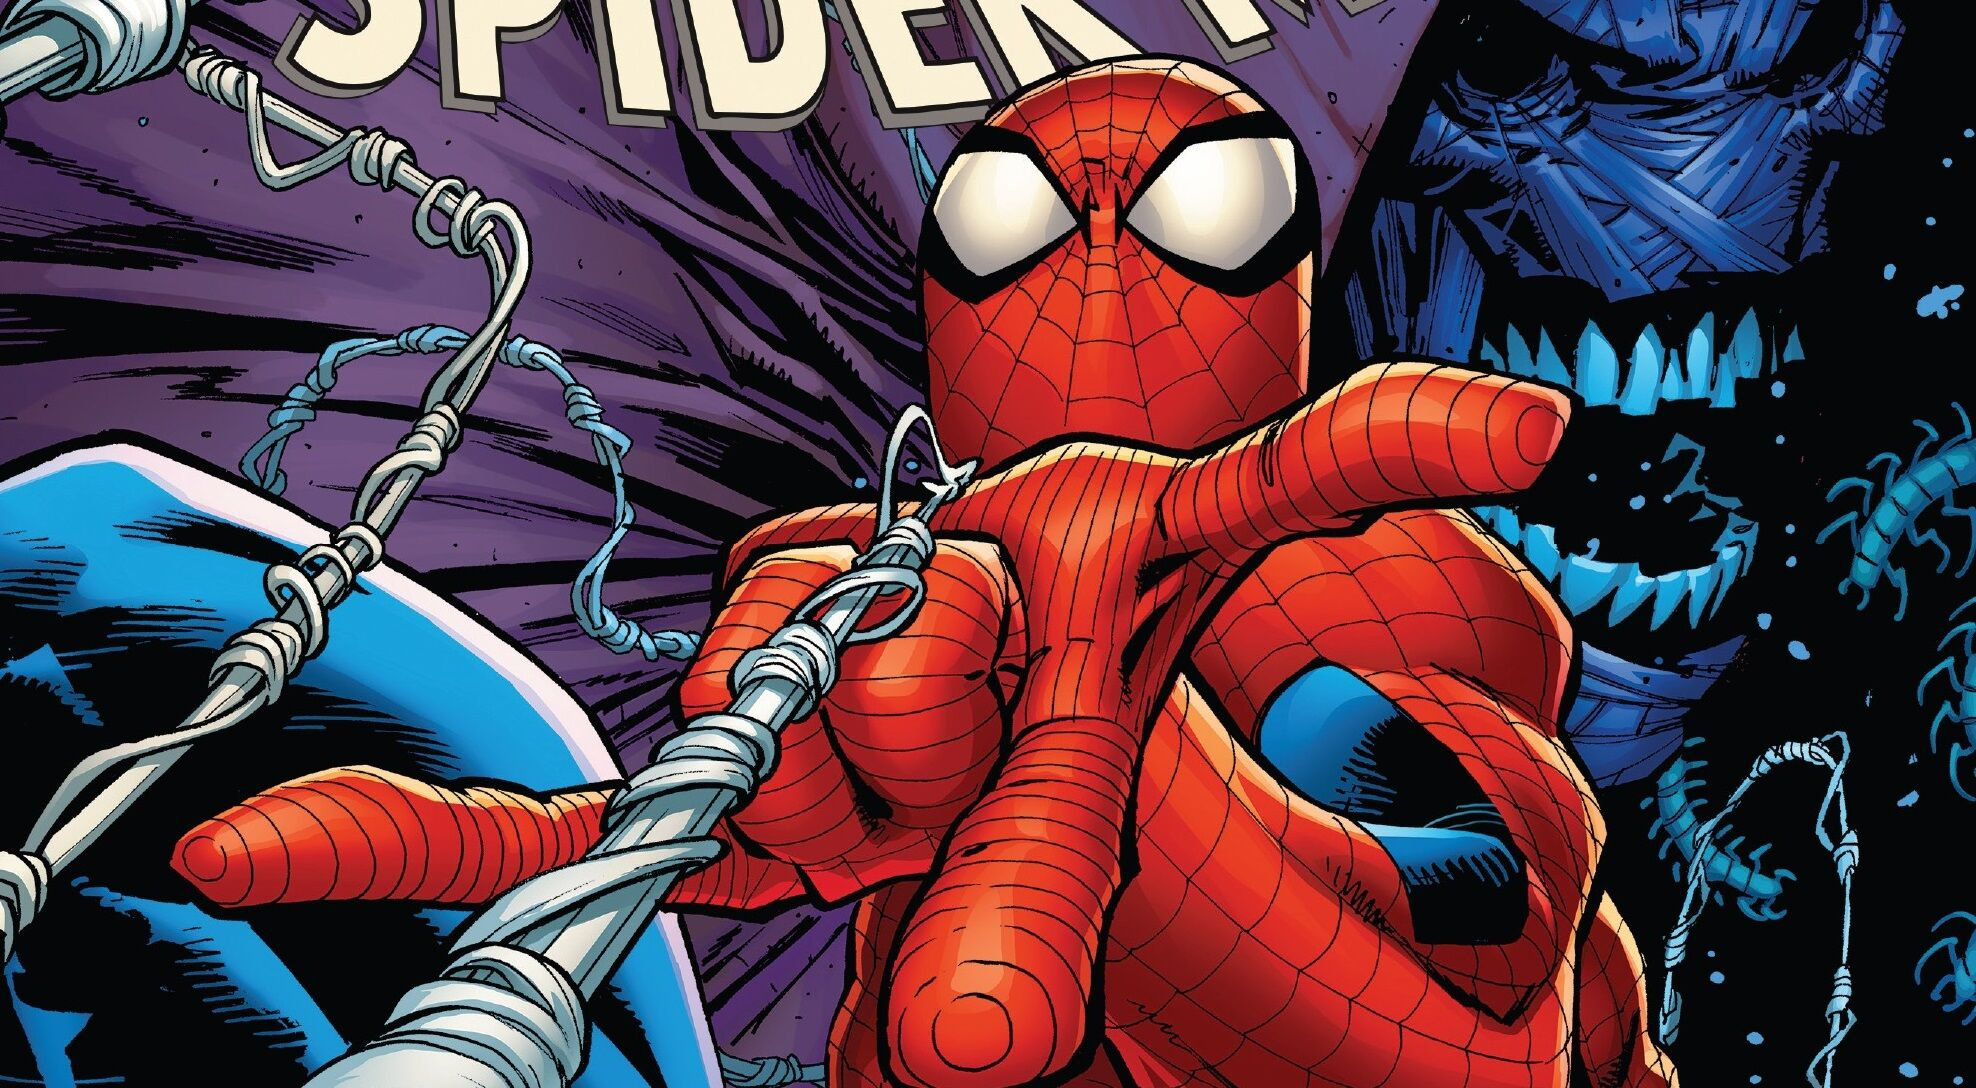 Peter begins undoing One More Day in Amazing Spider-Man No. 29